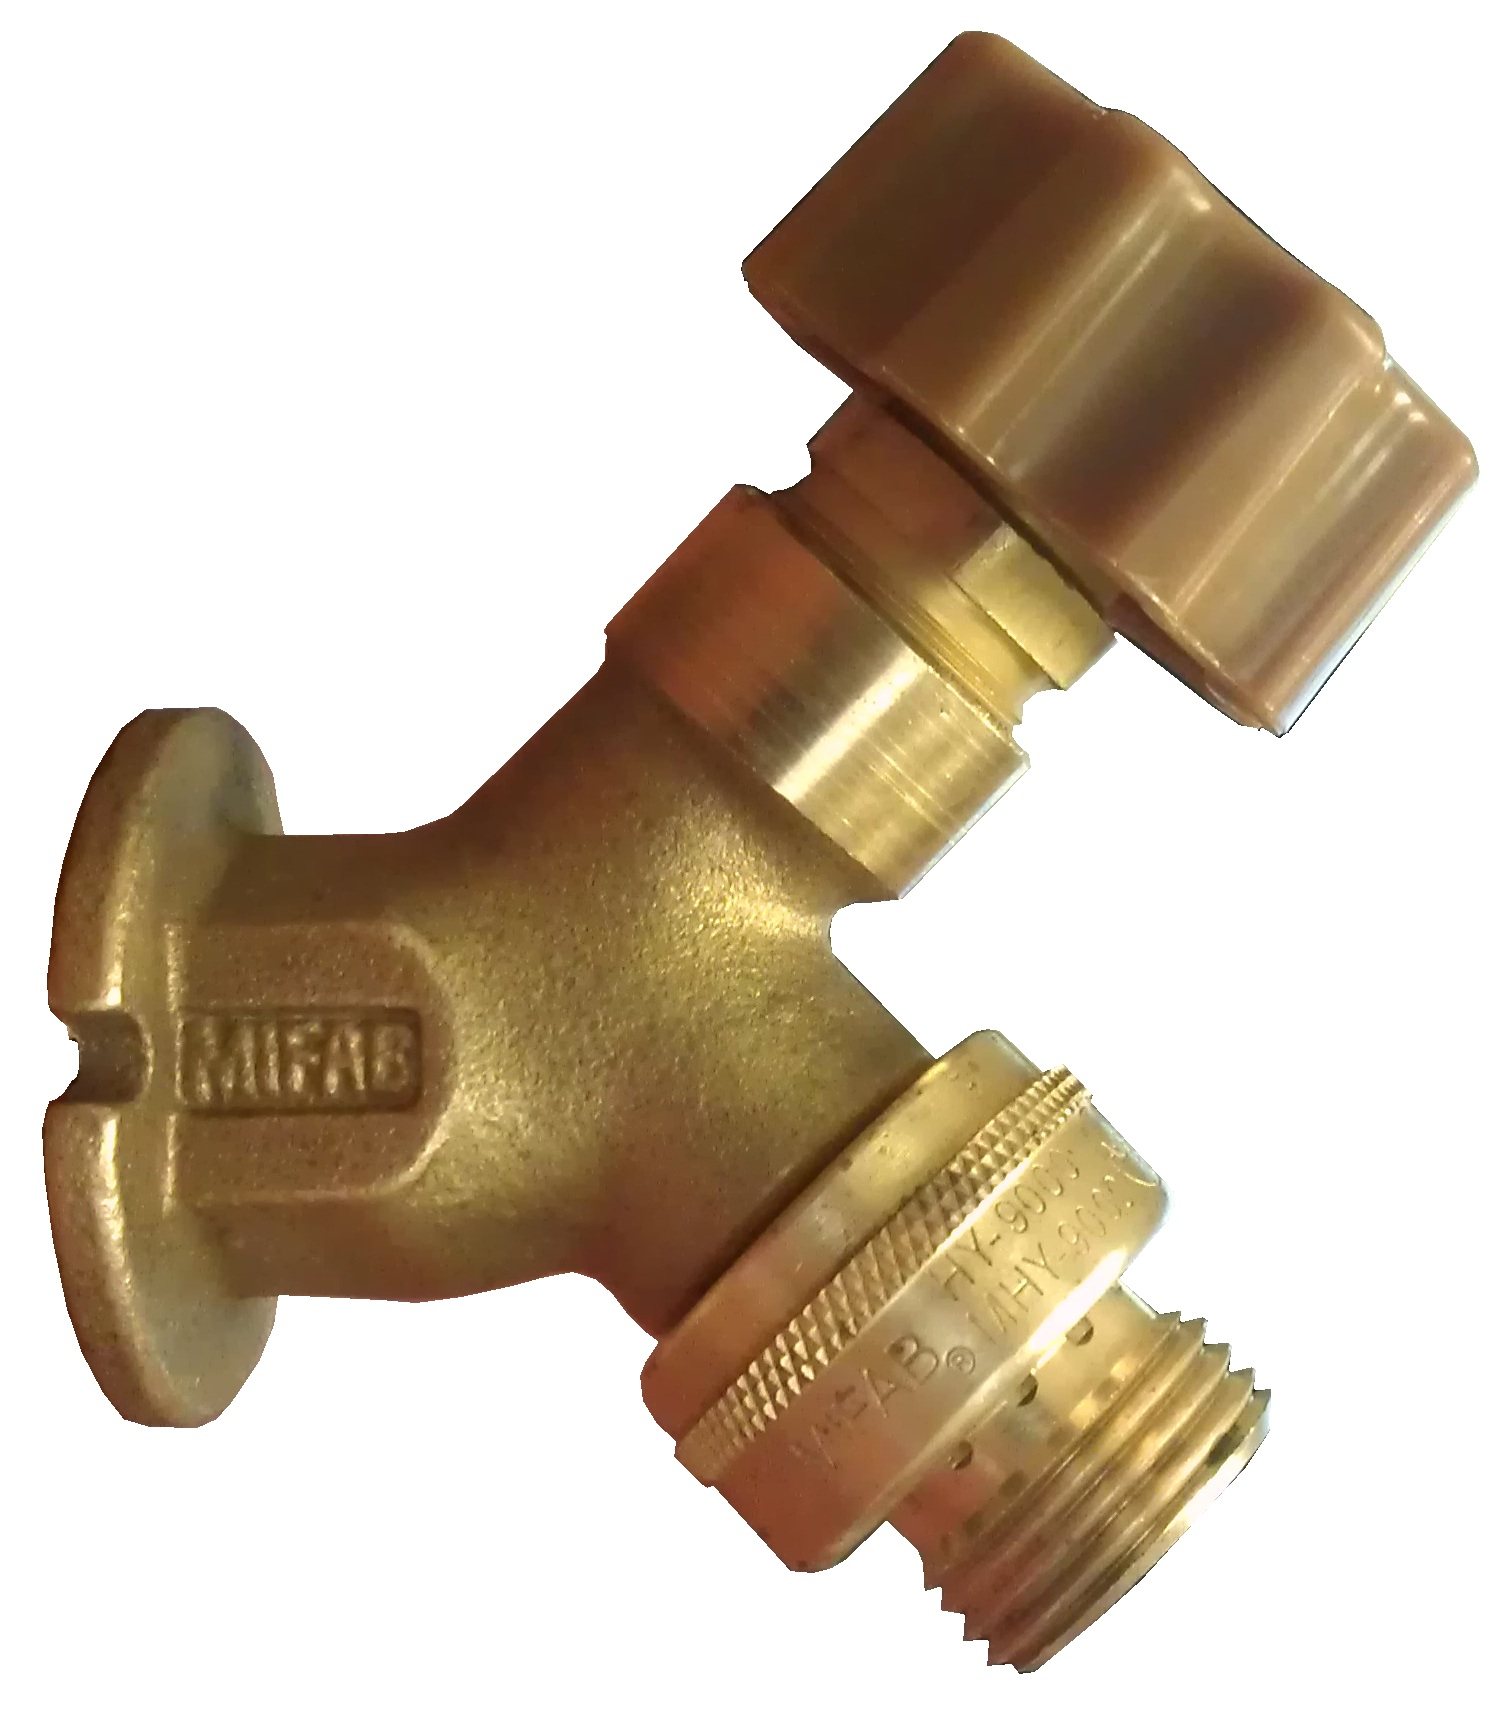 MHY-90 Series Rough Brass Wall Faucet